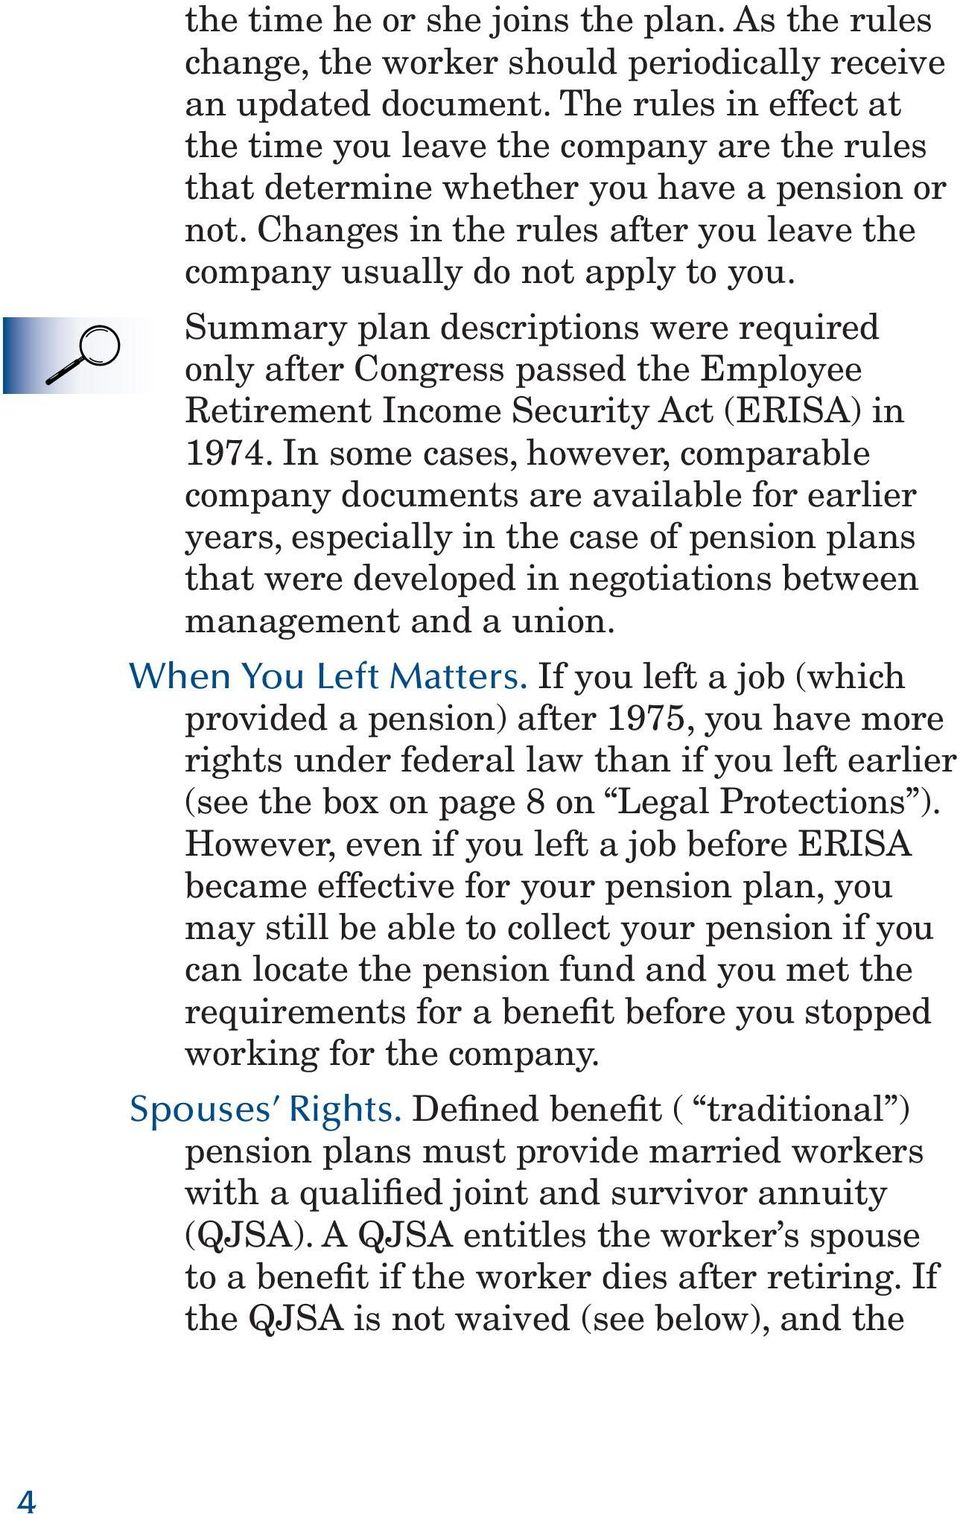 Summary plan descriptions were required only after Congress passed the Employee Retirement Income Security Act (ERISA) in 1974.